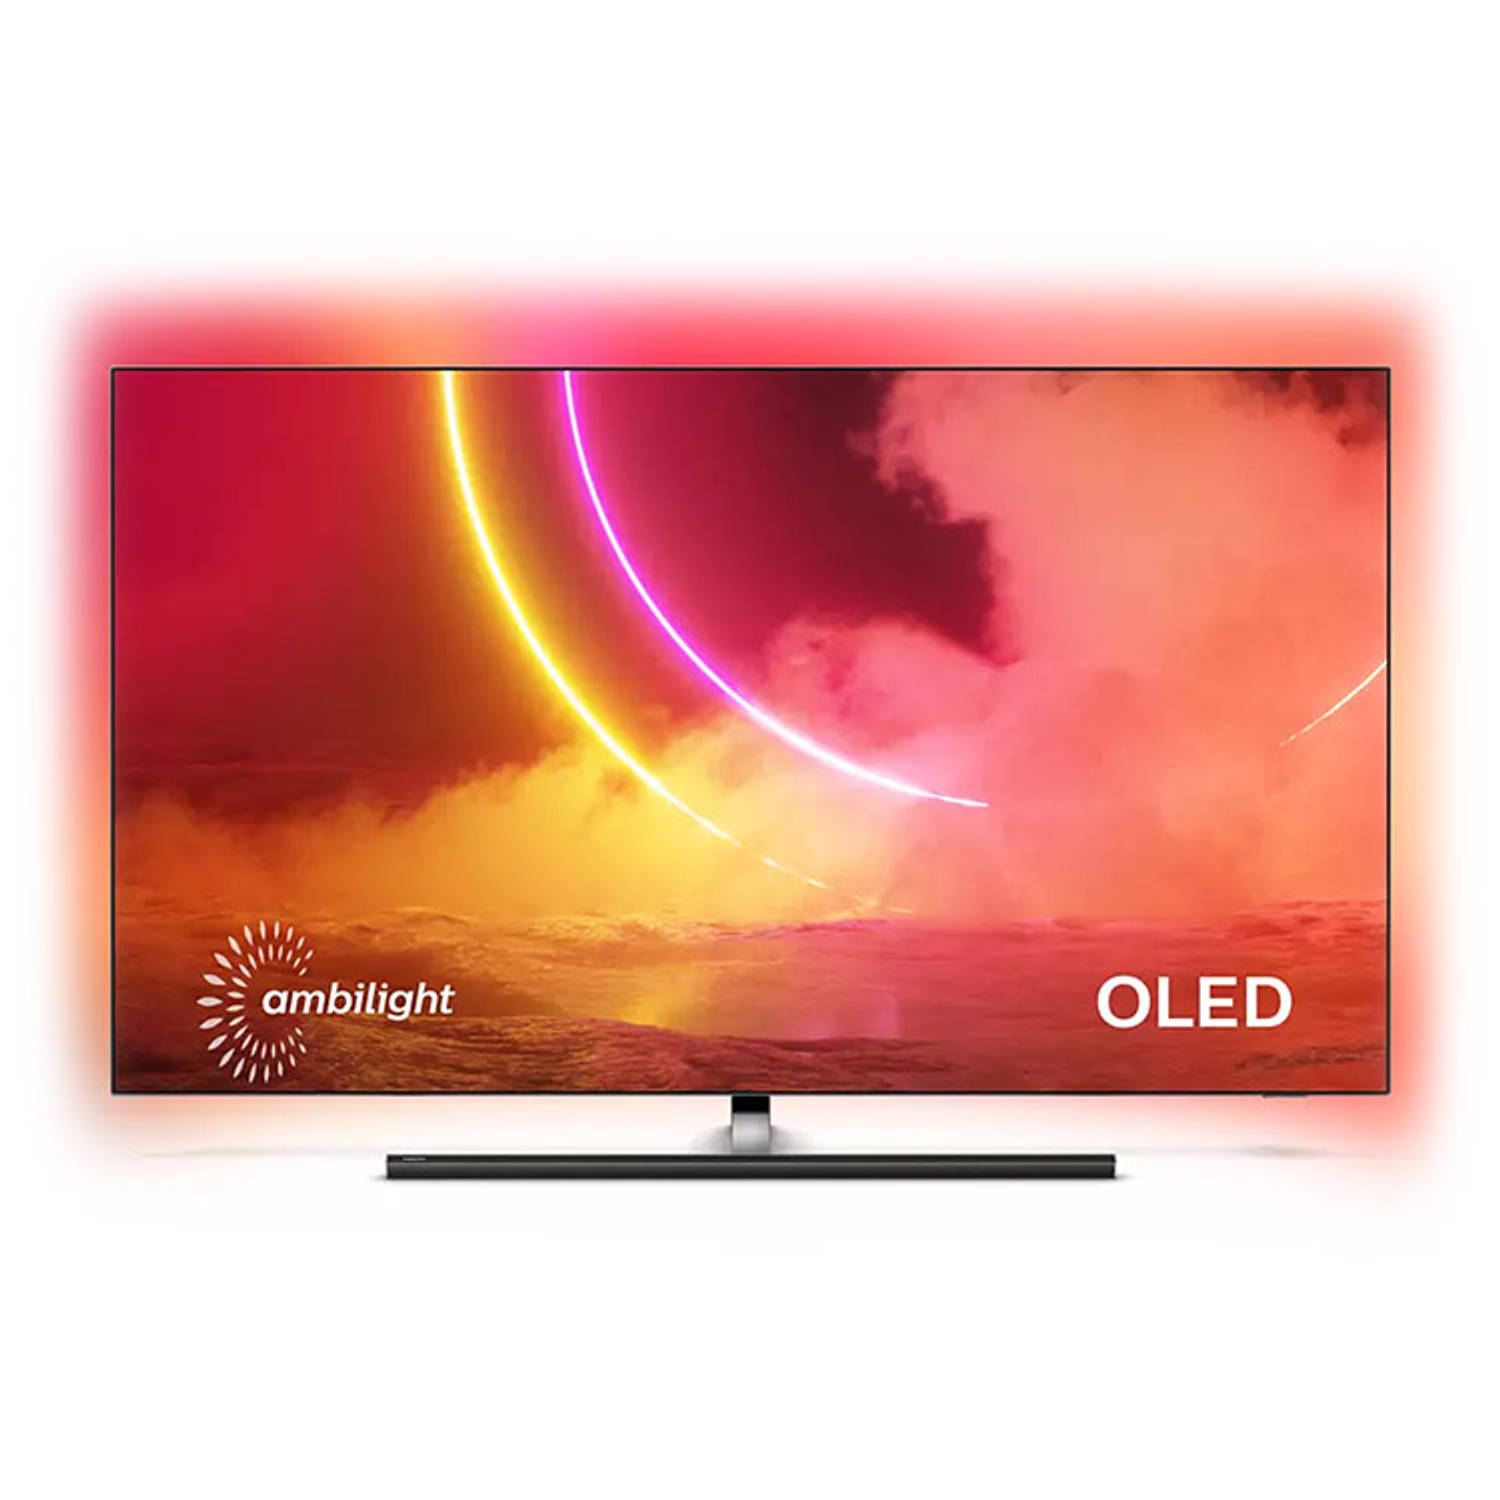 Philips 55oled865 – 4k Hdr Oled Ambilight Android Tv (55 Inch)